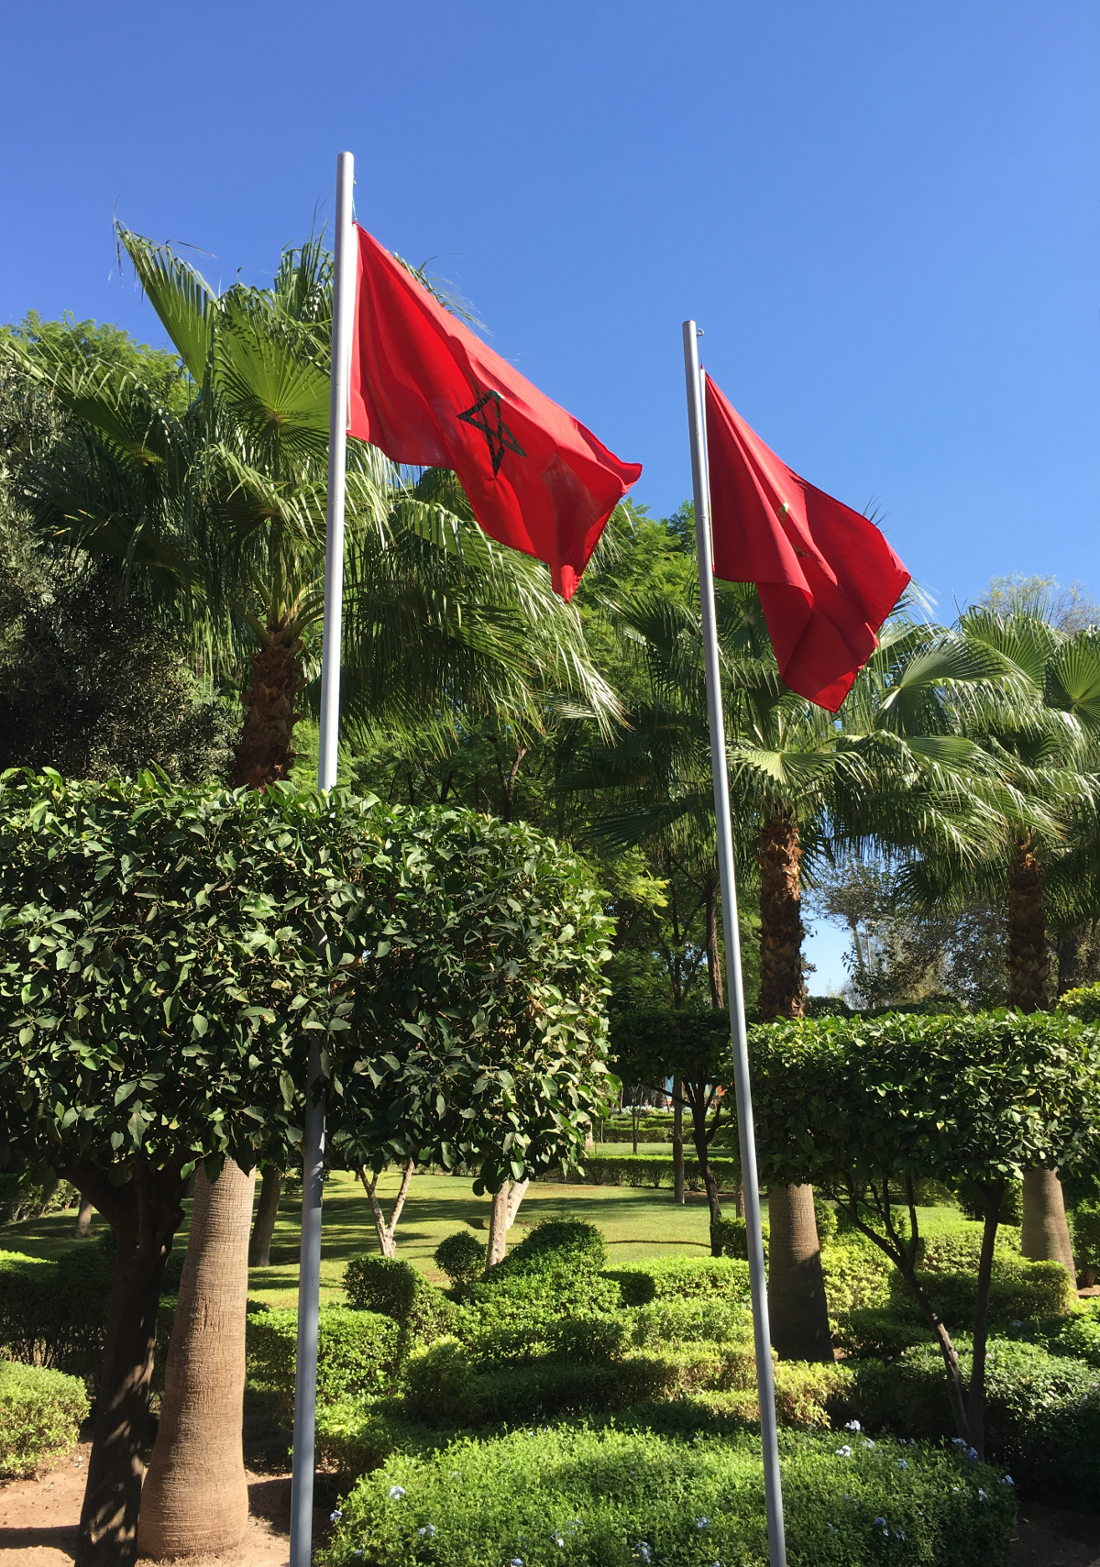 Marrakech Marrakesh Morocco Tourist Tips and travel information city guide how to what to know before you visit where to stay hotels riads moroccan flag park marrakech flag red green star middle flying